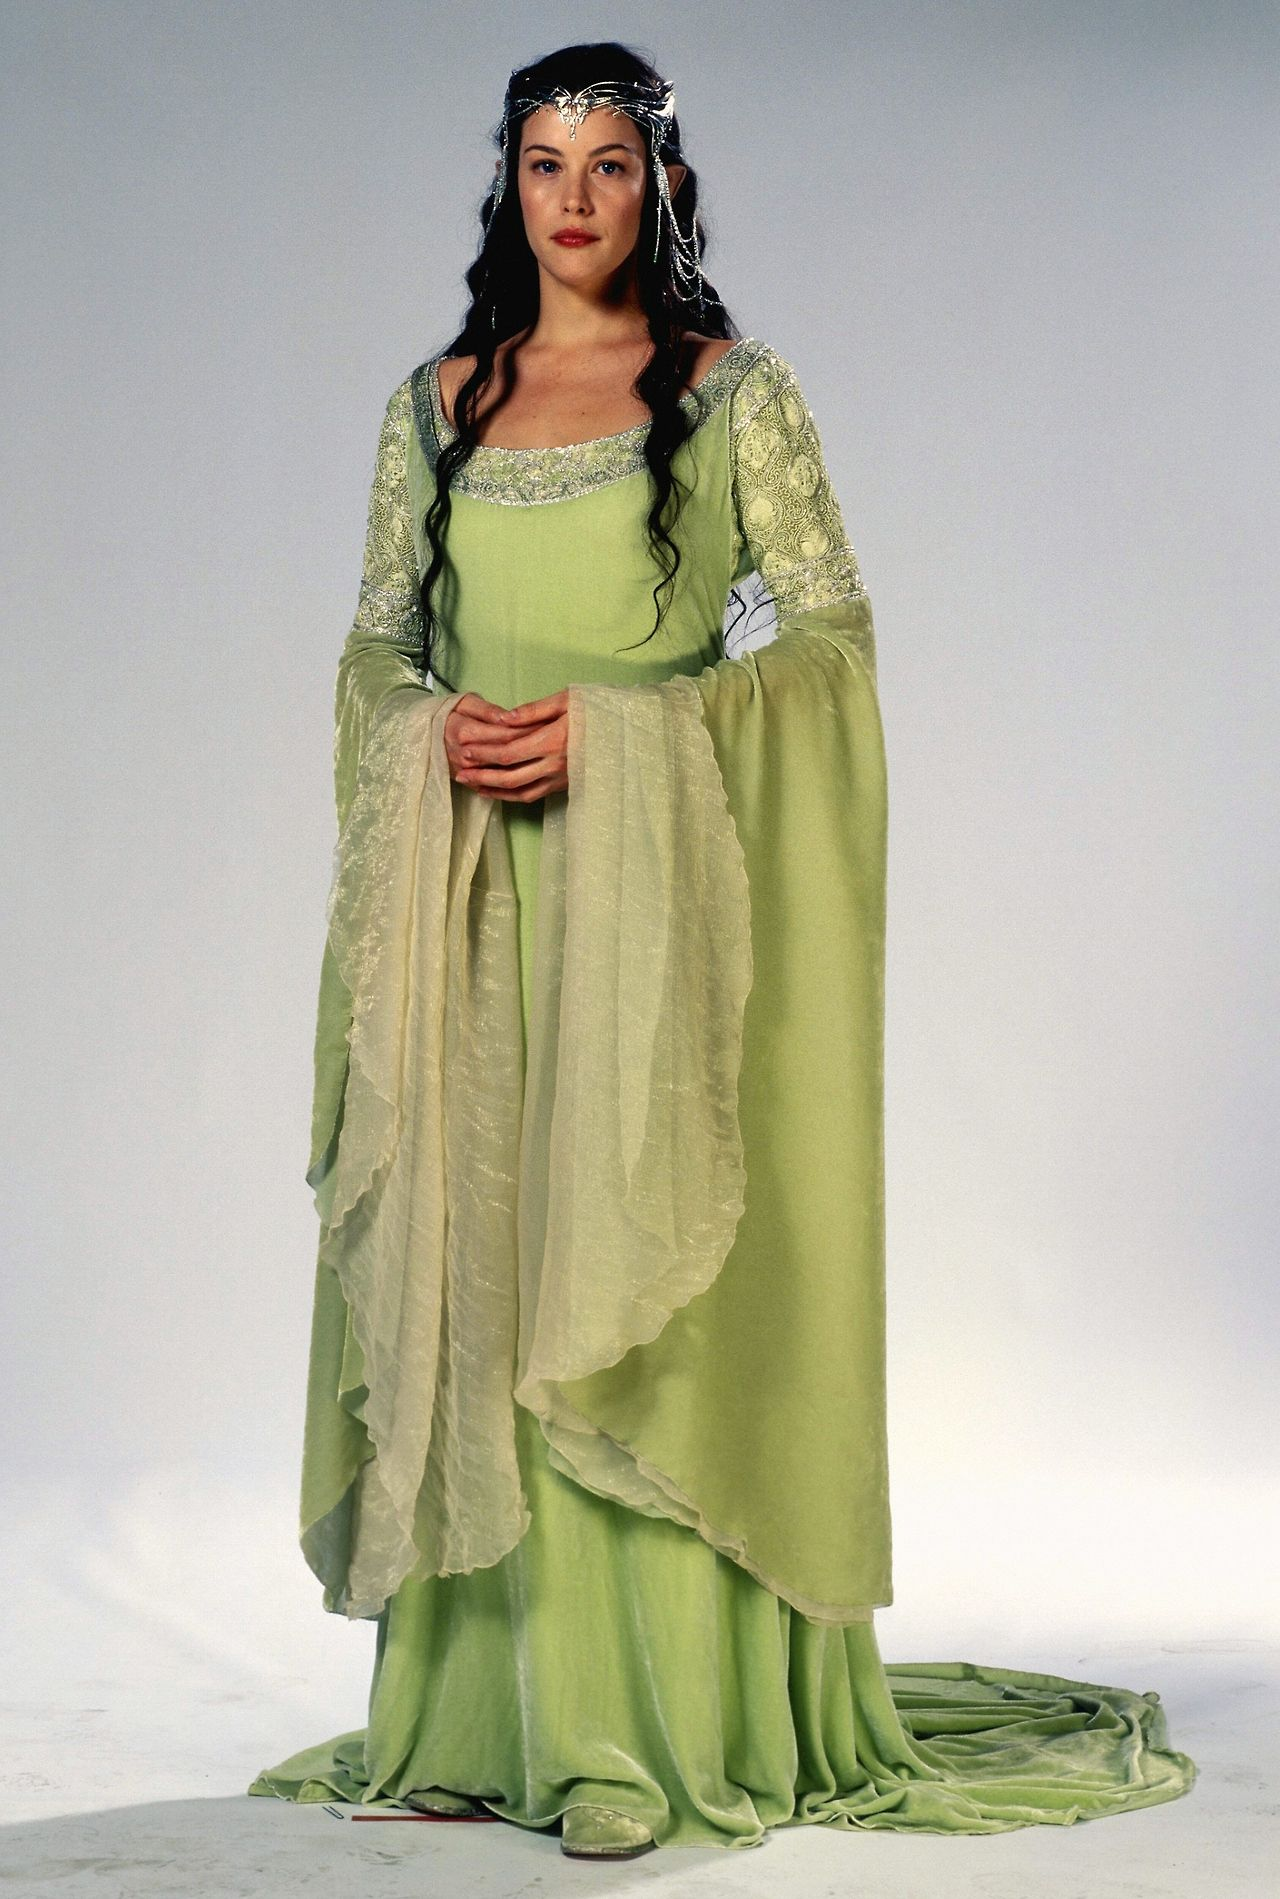 Arwen's Costumes Cinema Pinterest Costumes, LOTR and